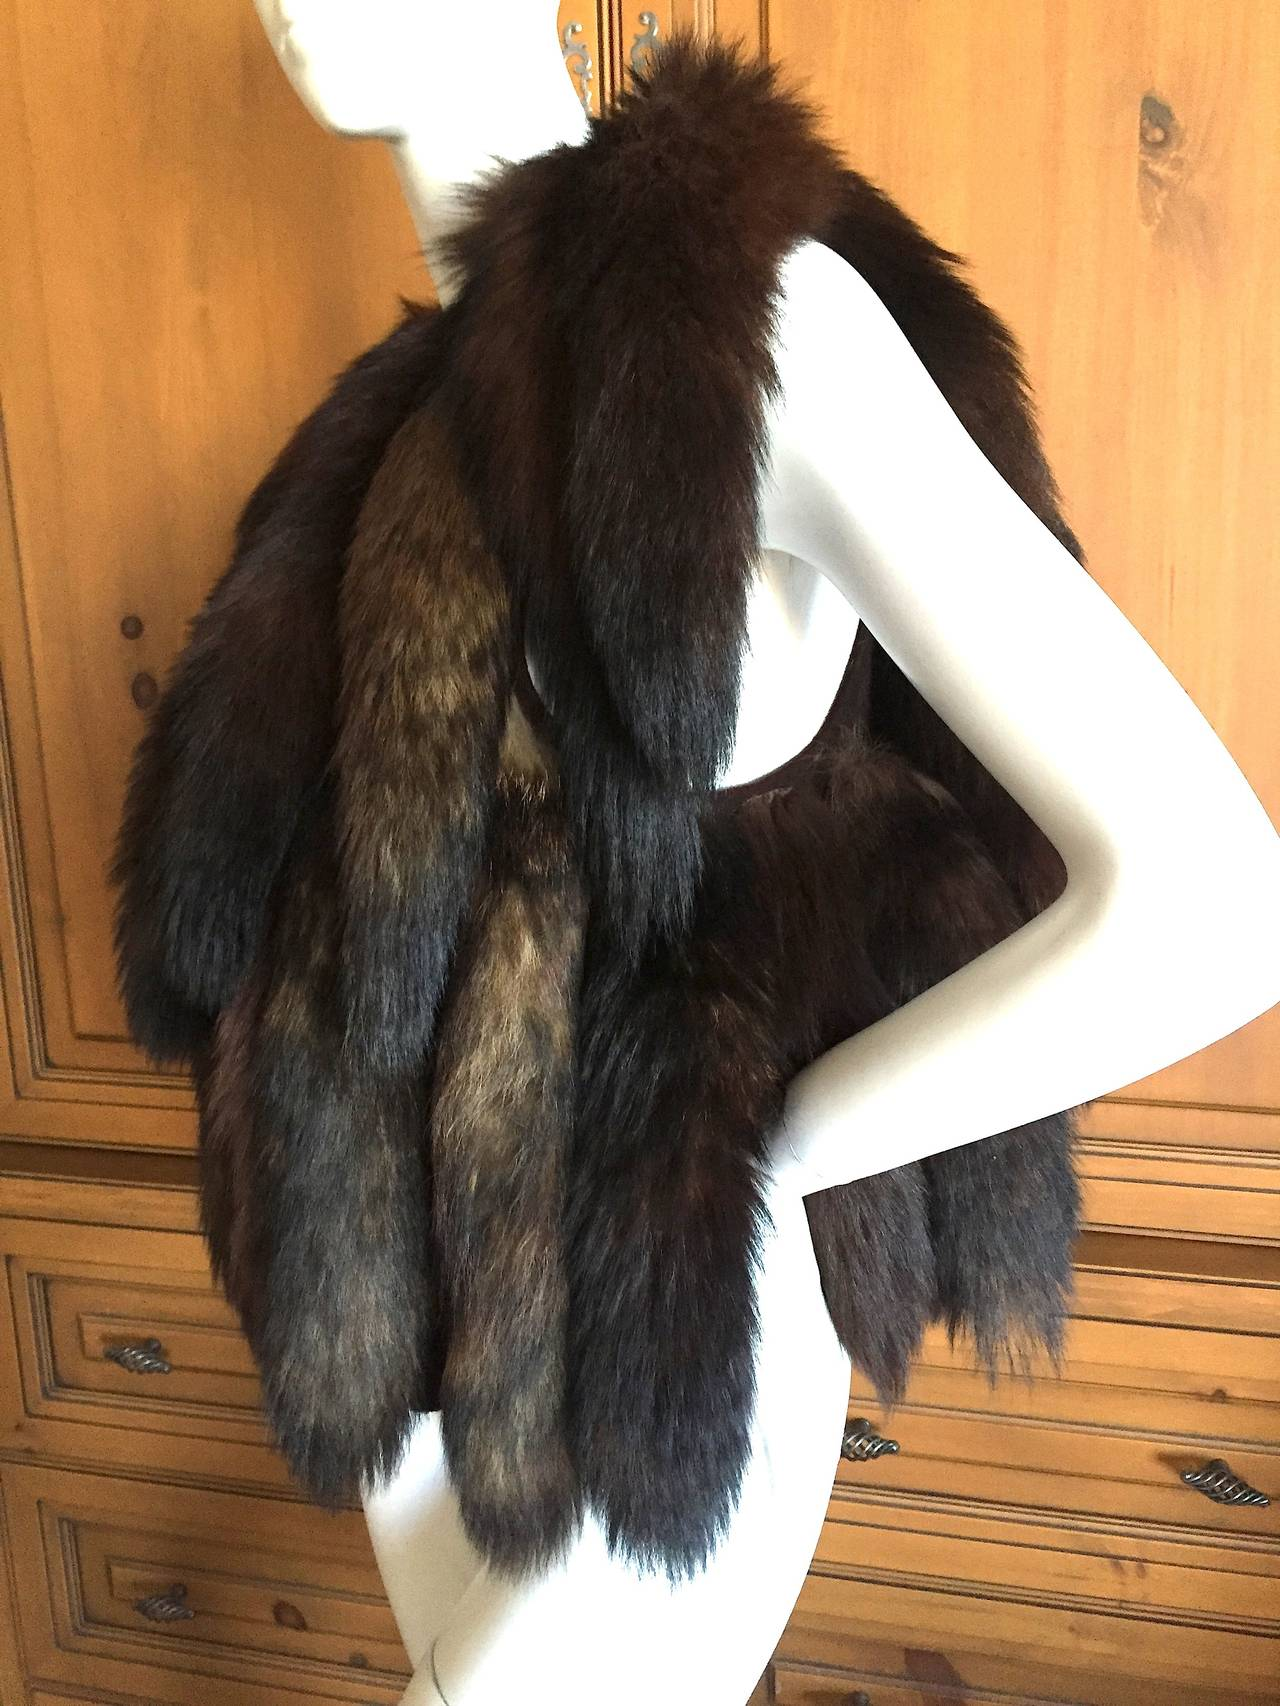 Black Giorgio Bevery HIlls Boho Fox Tail Boho Vest For Sale